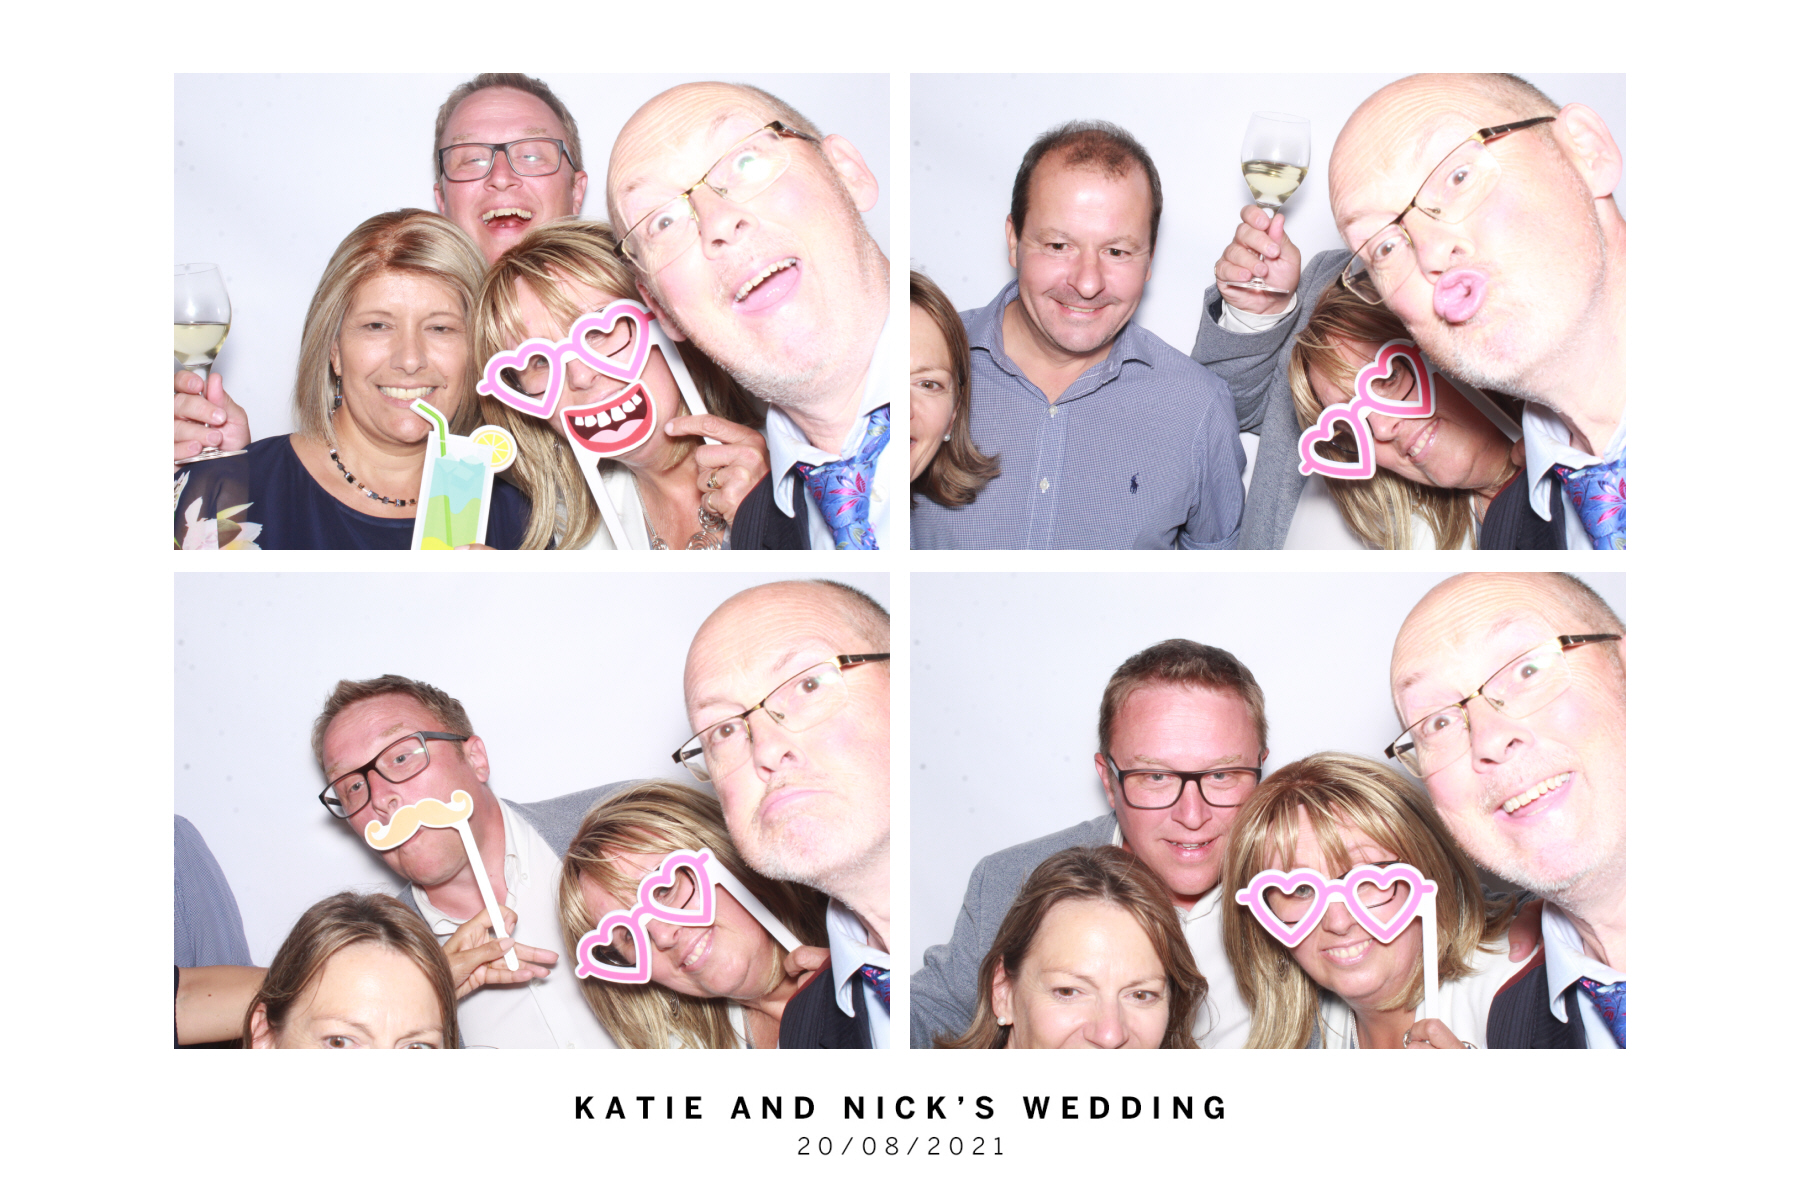 Katie and Nick's Wedding   View more photos from the event at gallery.thephotocabin.co.uk/u/ThePhotoCabin/Katie-and-Nick's-Wedding